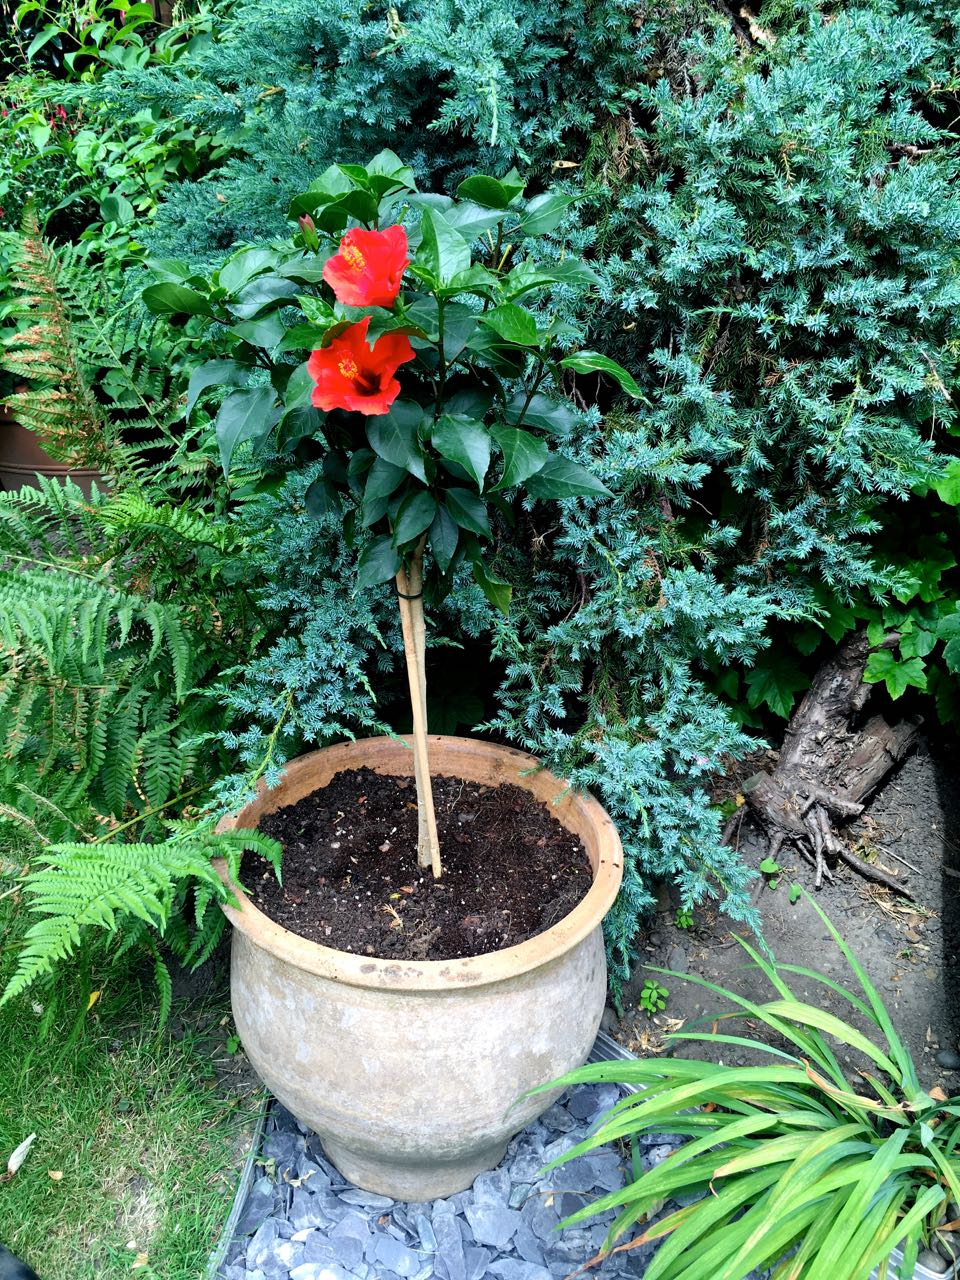 And quickly replaced with the new standard hibiscus